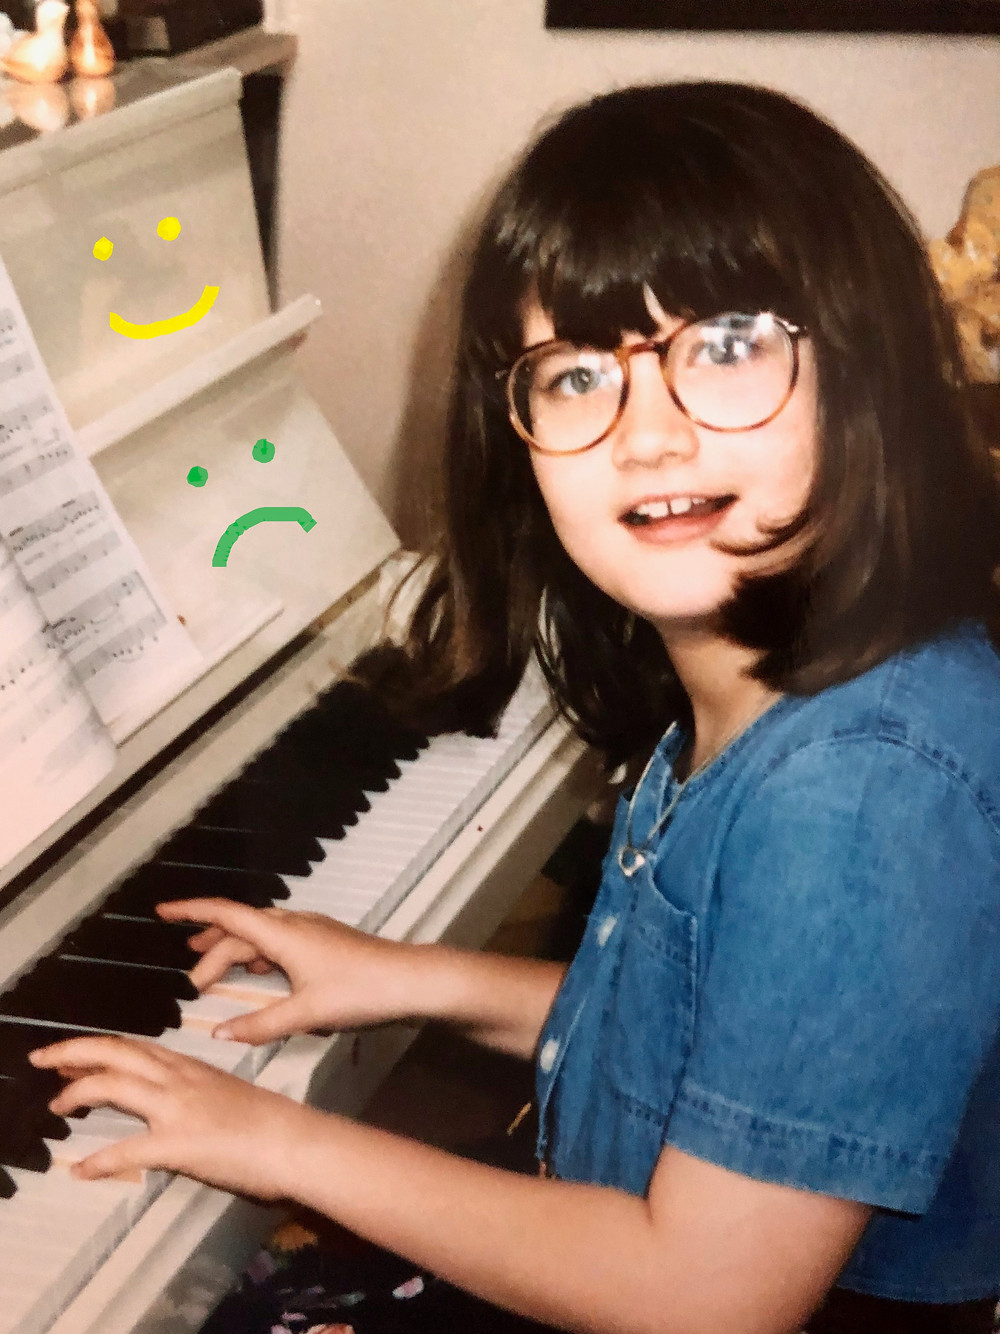 white girl with glasses and brown hair playing a white piano with handdrawn frowny faces on piano